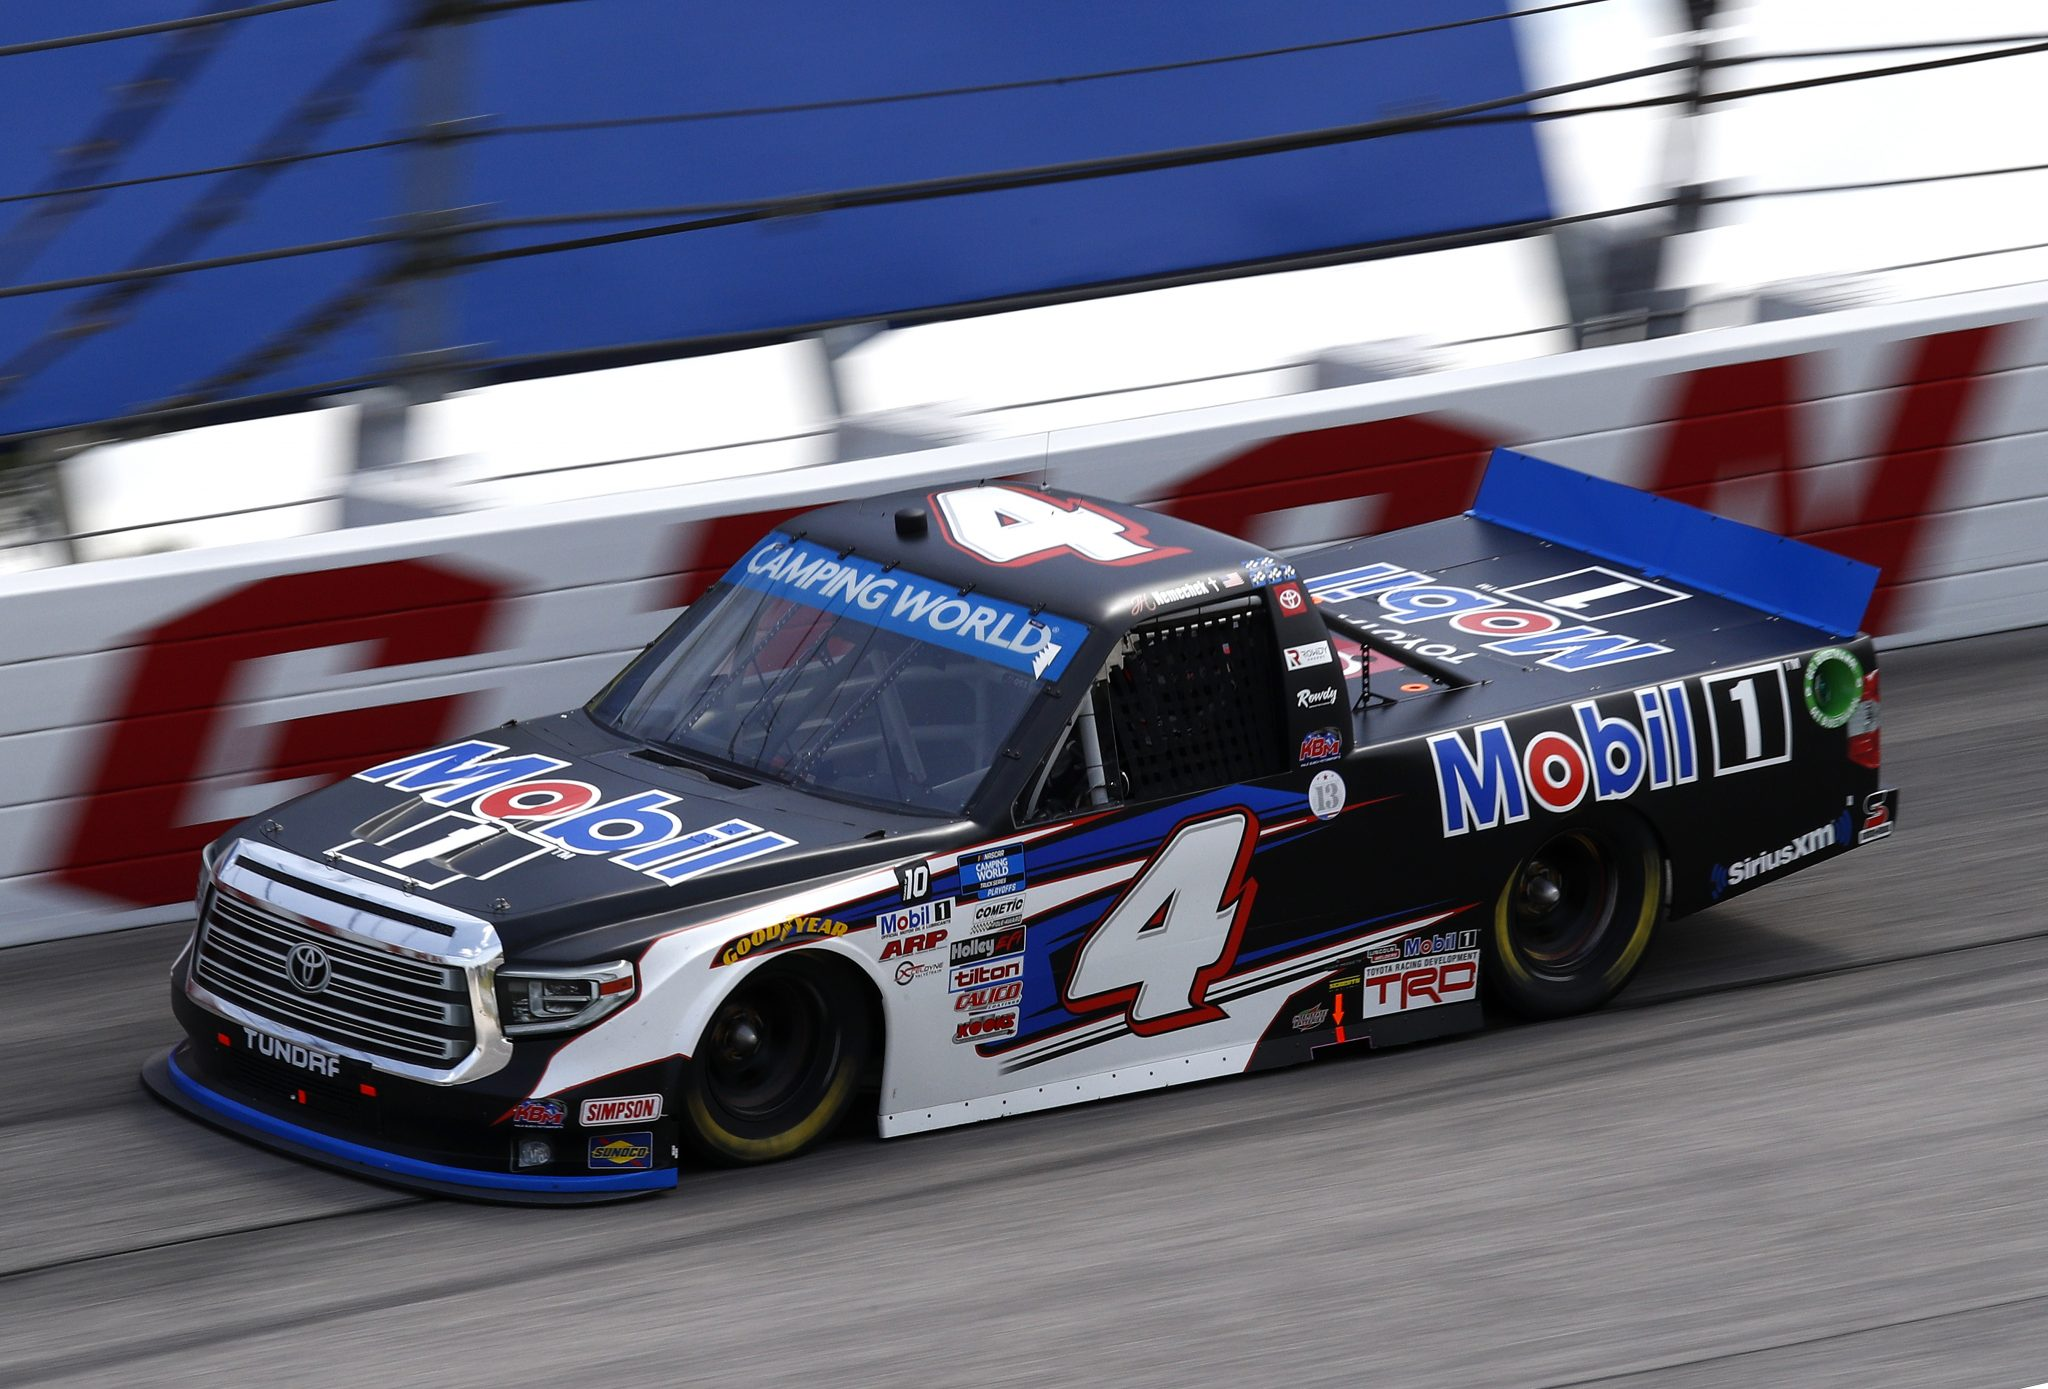 DARLINGTON, SOUTH CAROLINA - SEPTEMBER 05: John H. Nemechek, driver of the #4 Mobil 1 Toyota, drives during the NASCAR Camping World Truck Series In It To Win It 200 at Darlington Raceway on September 05, 2021 in Darlington, South Carolina. (Photo by Jared East/Getty Images)   Getty Images